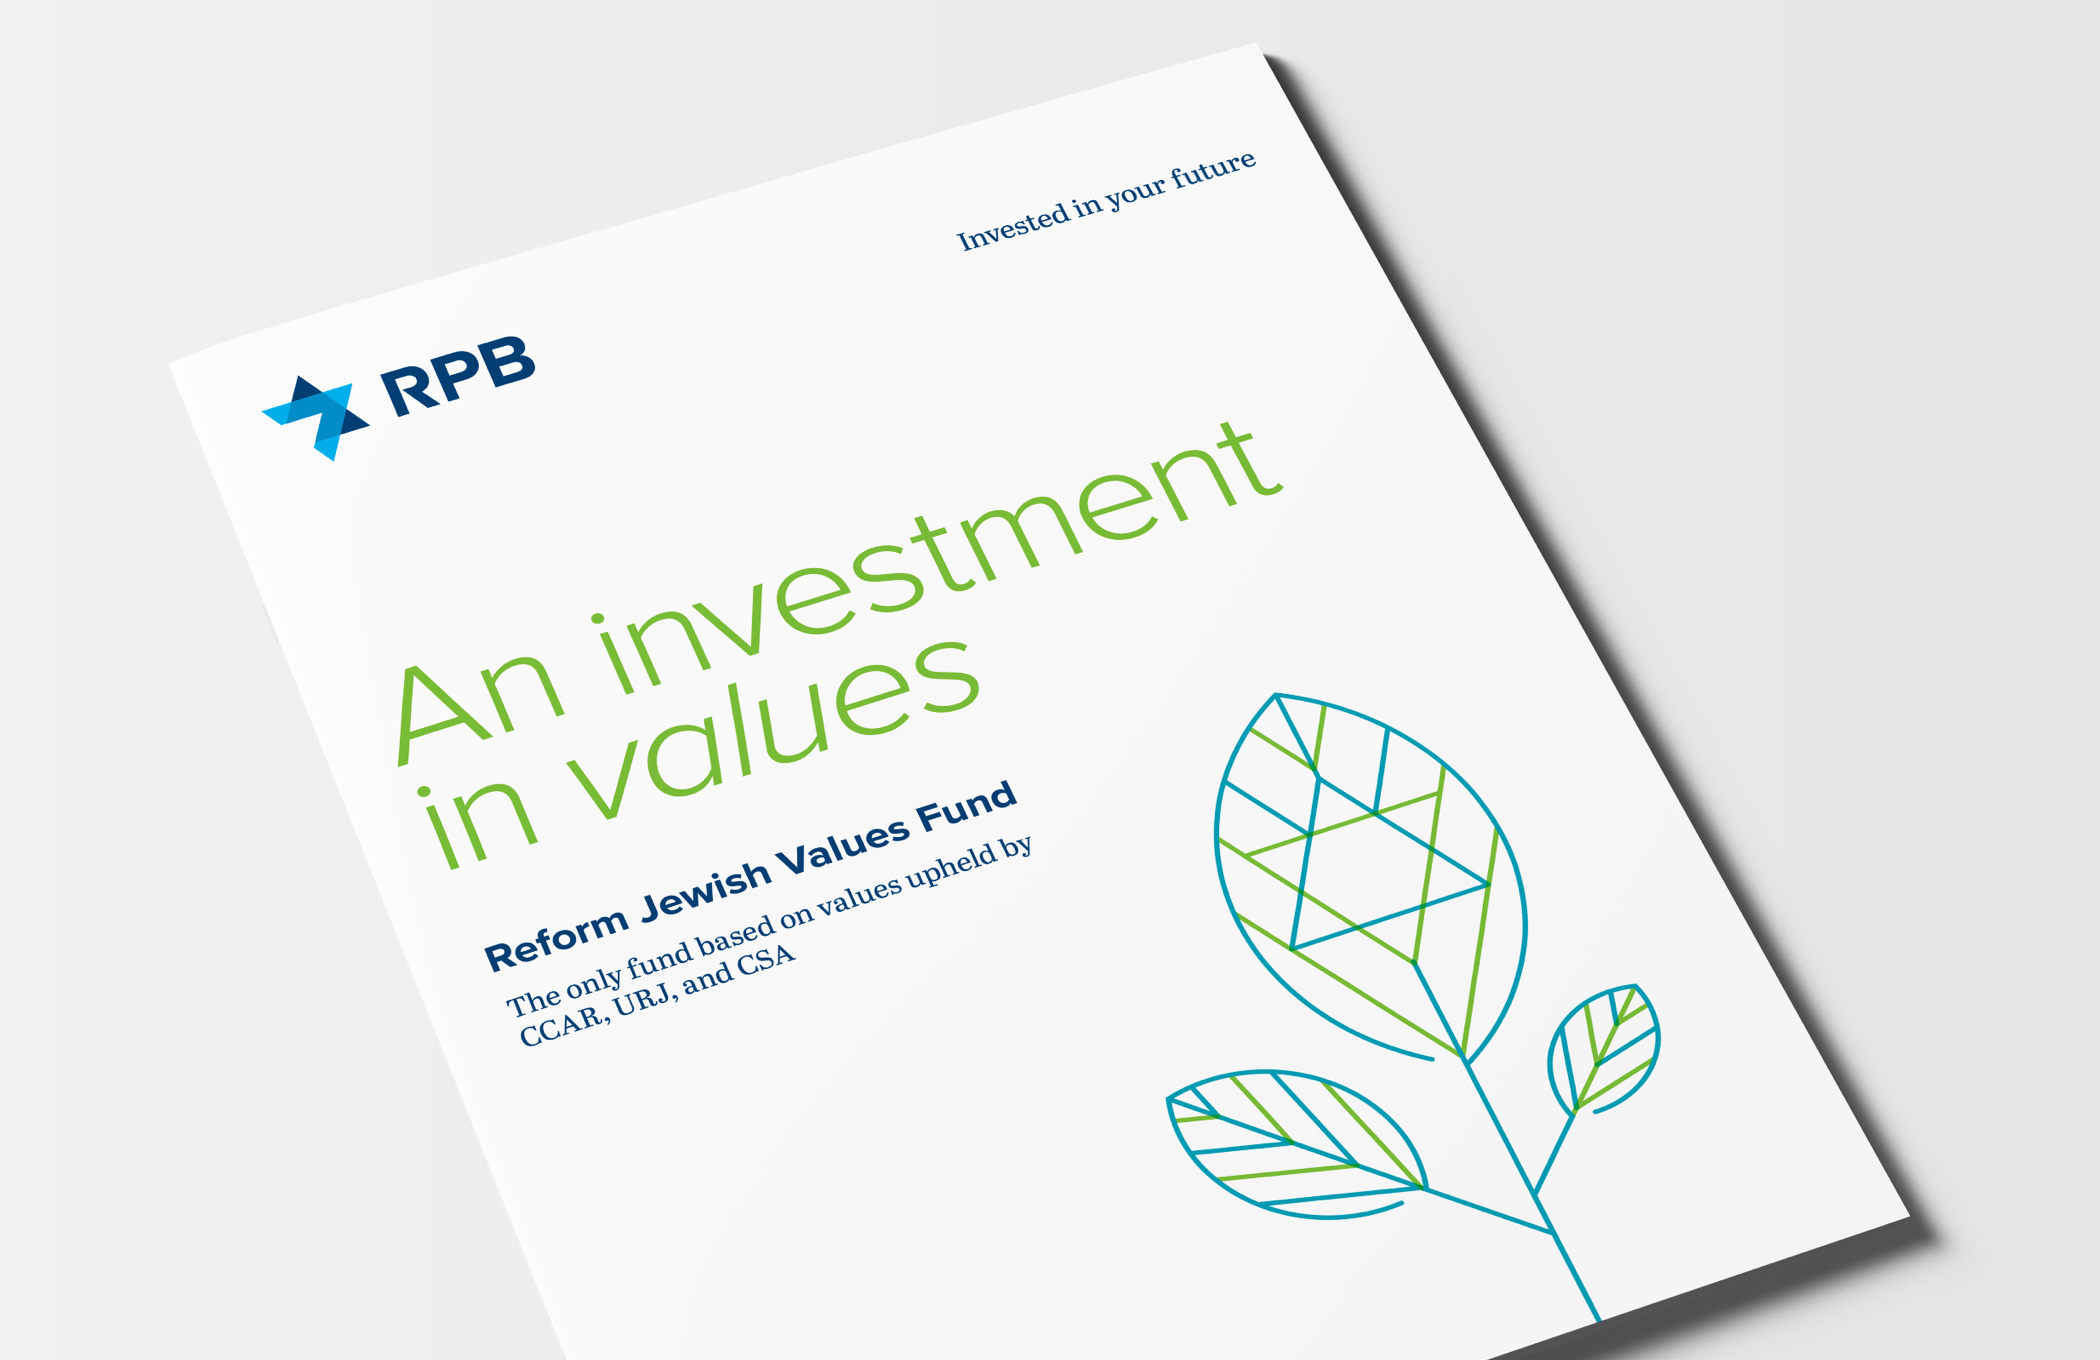 """Illustrated cover of the RPB Reform Jewish Values Fund brochure with the headline """"An investment in values."""""""